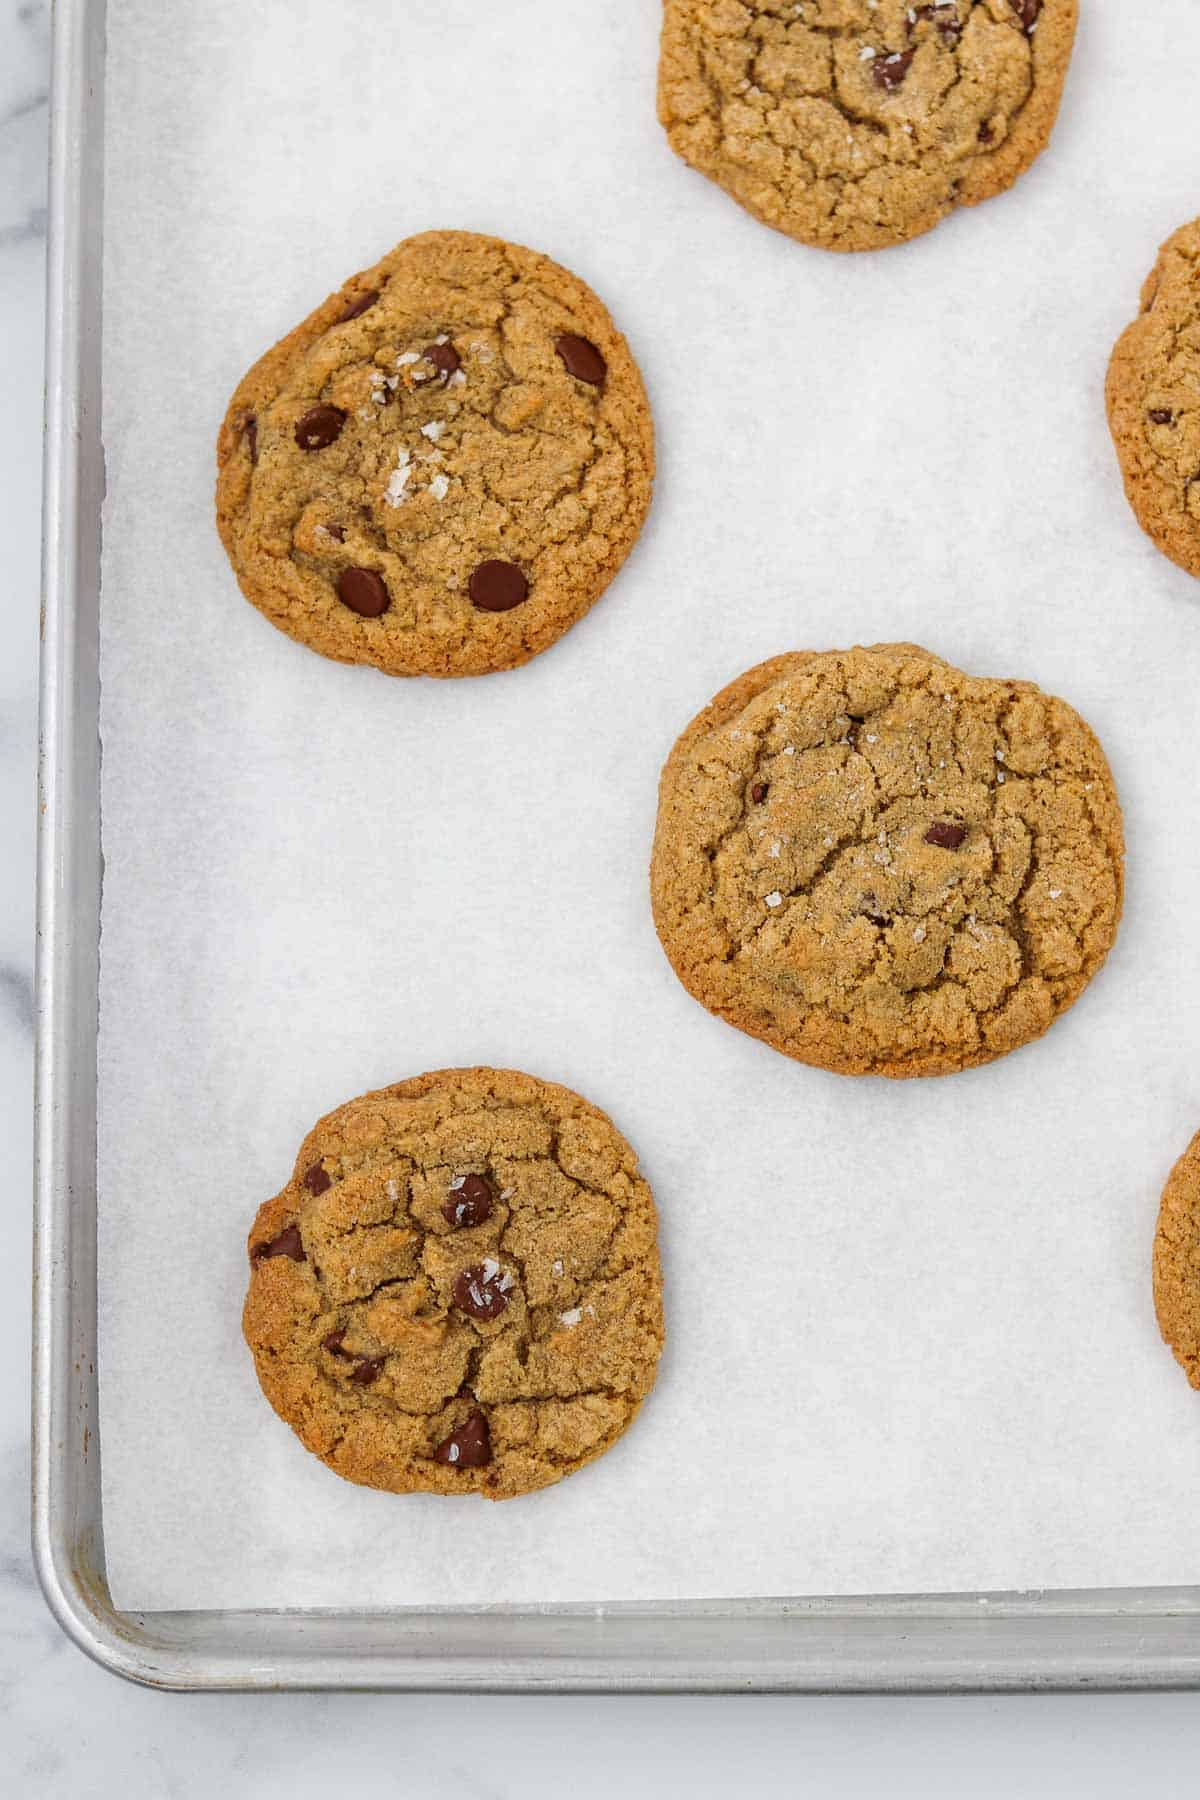 Chocolate chip cookies on a baking sheet.